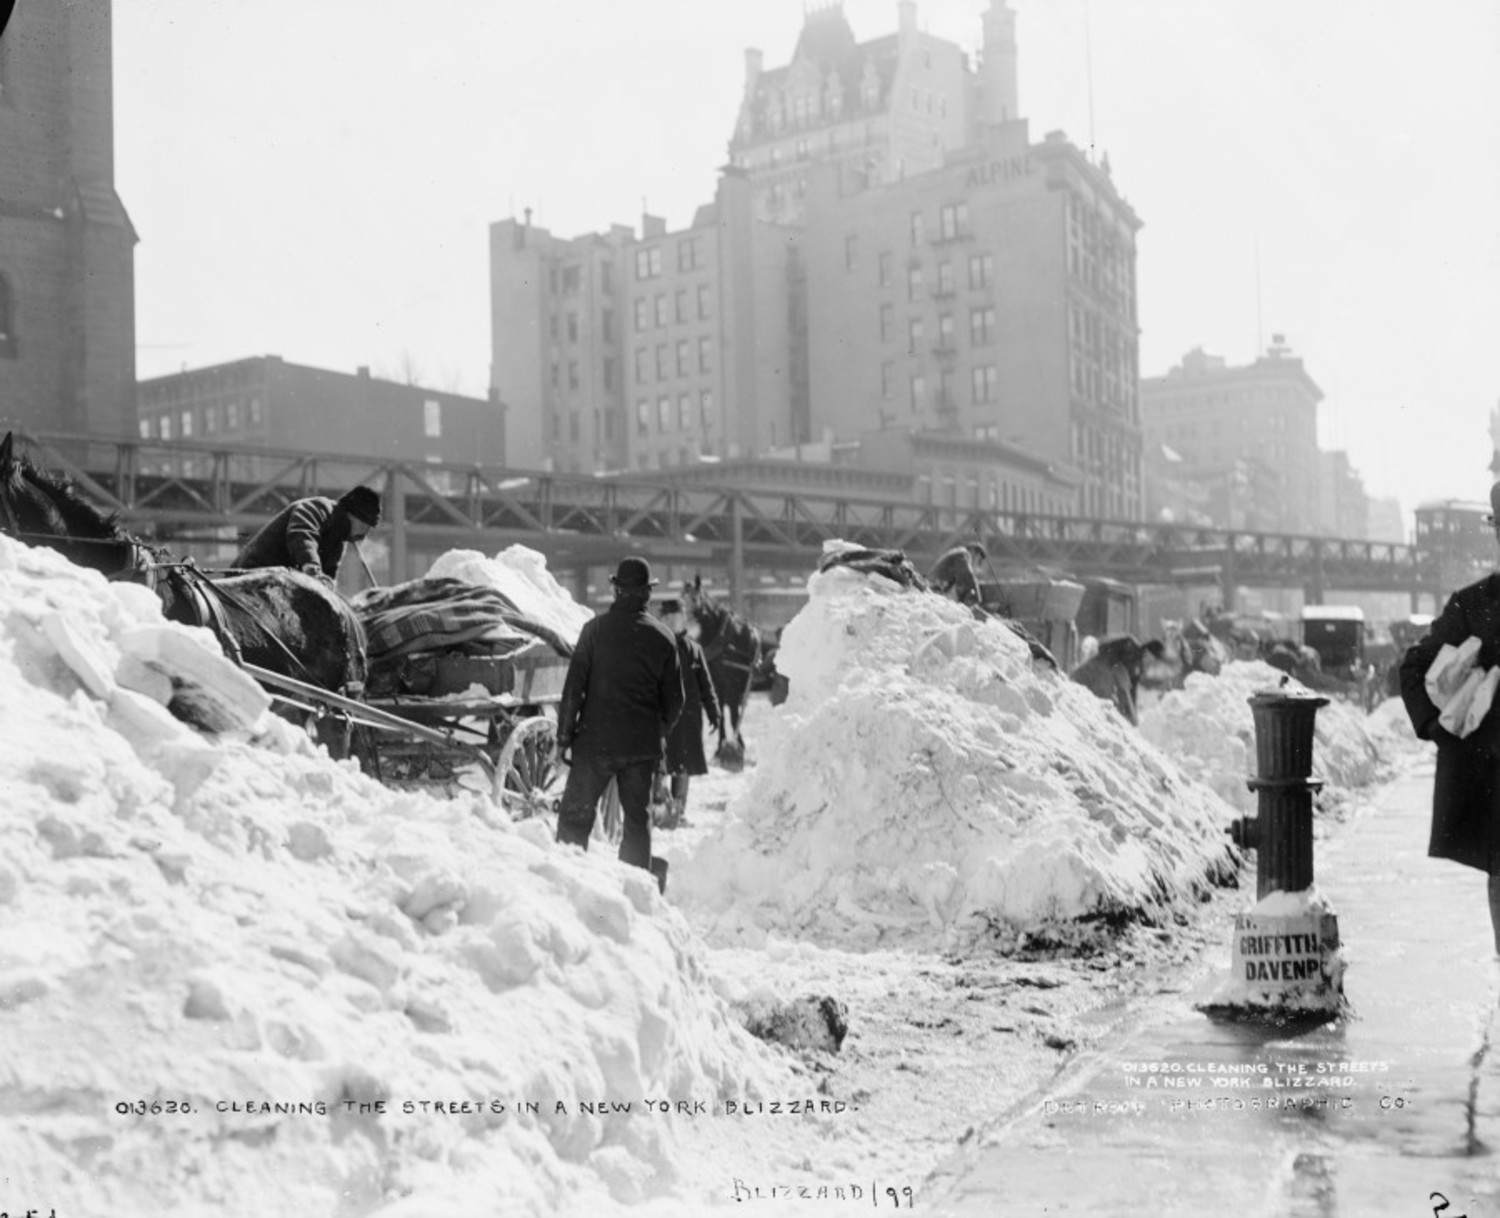 1899 Cleaning up after New York's blizzard of 1899 photo Detroit Publishing